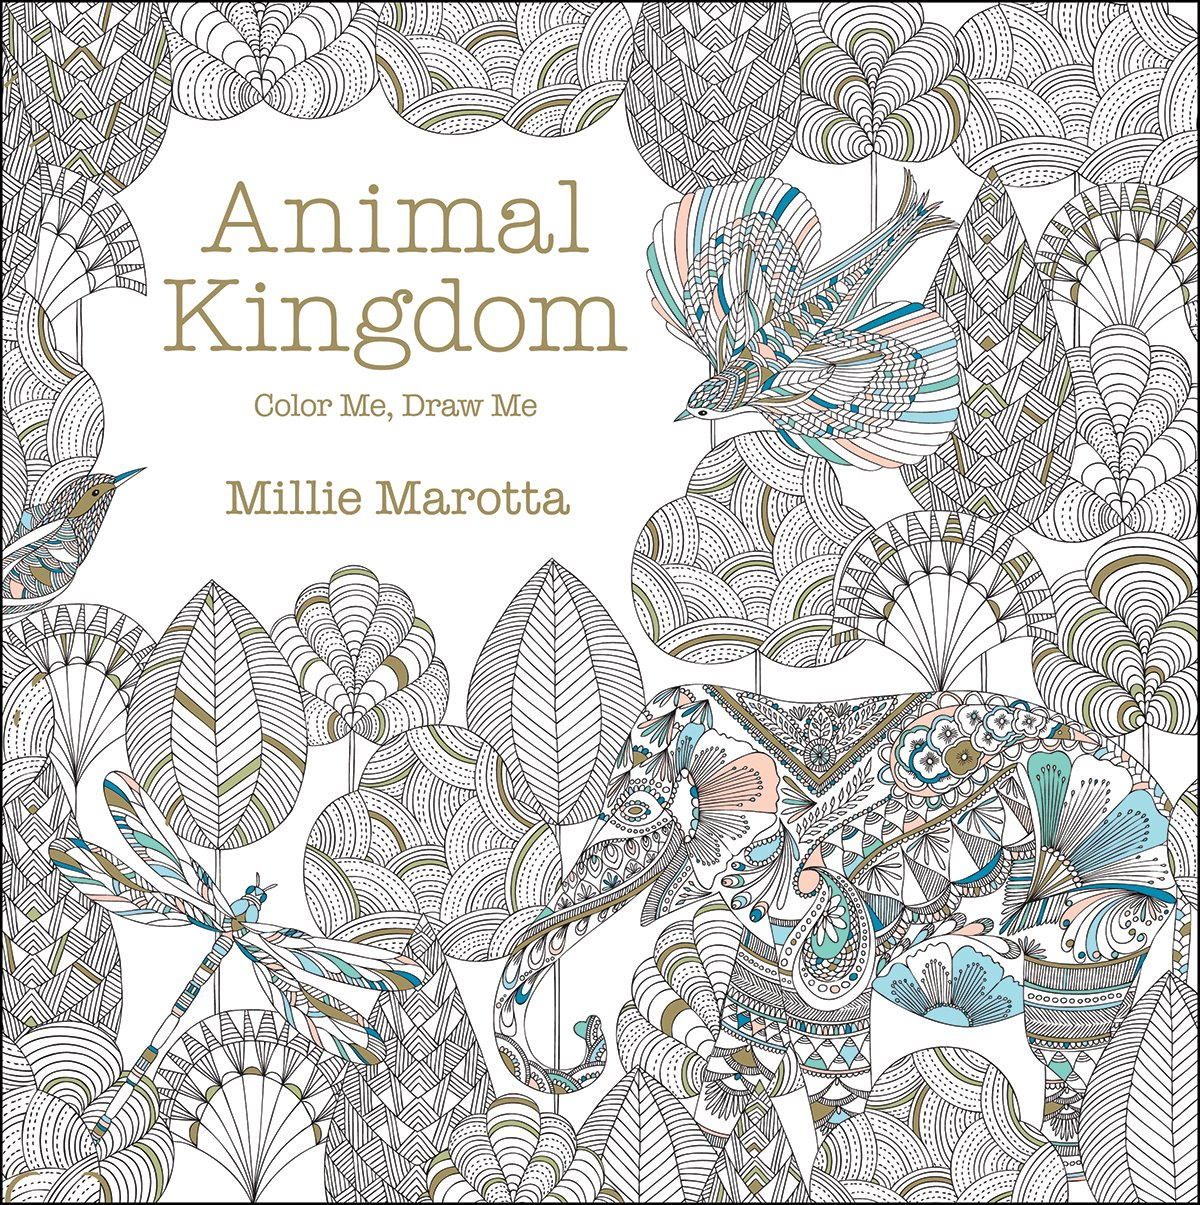 How much is the coloring book for adults - Amazon com animal kingdom color me draw me a millie marotta adult coloring book 9781454709107 millie marotta books